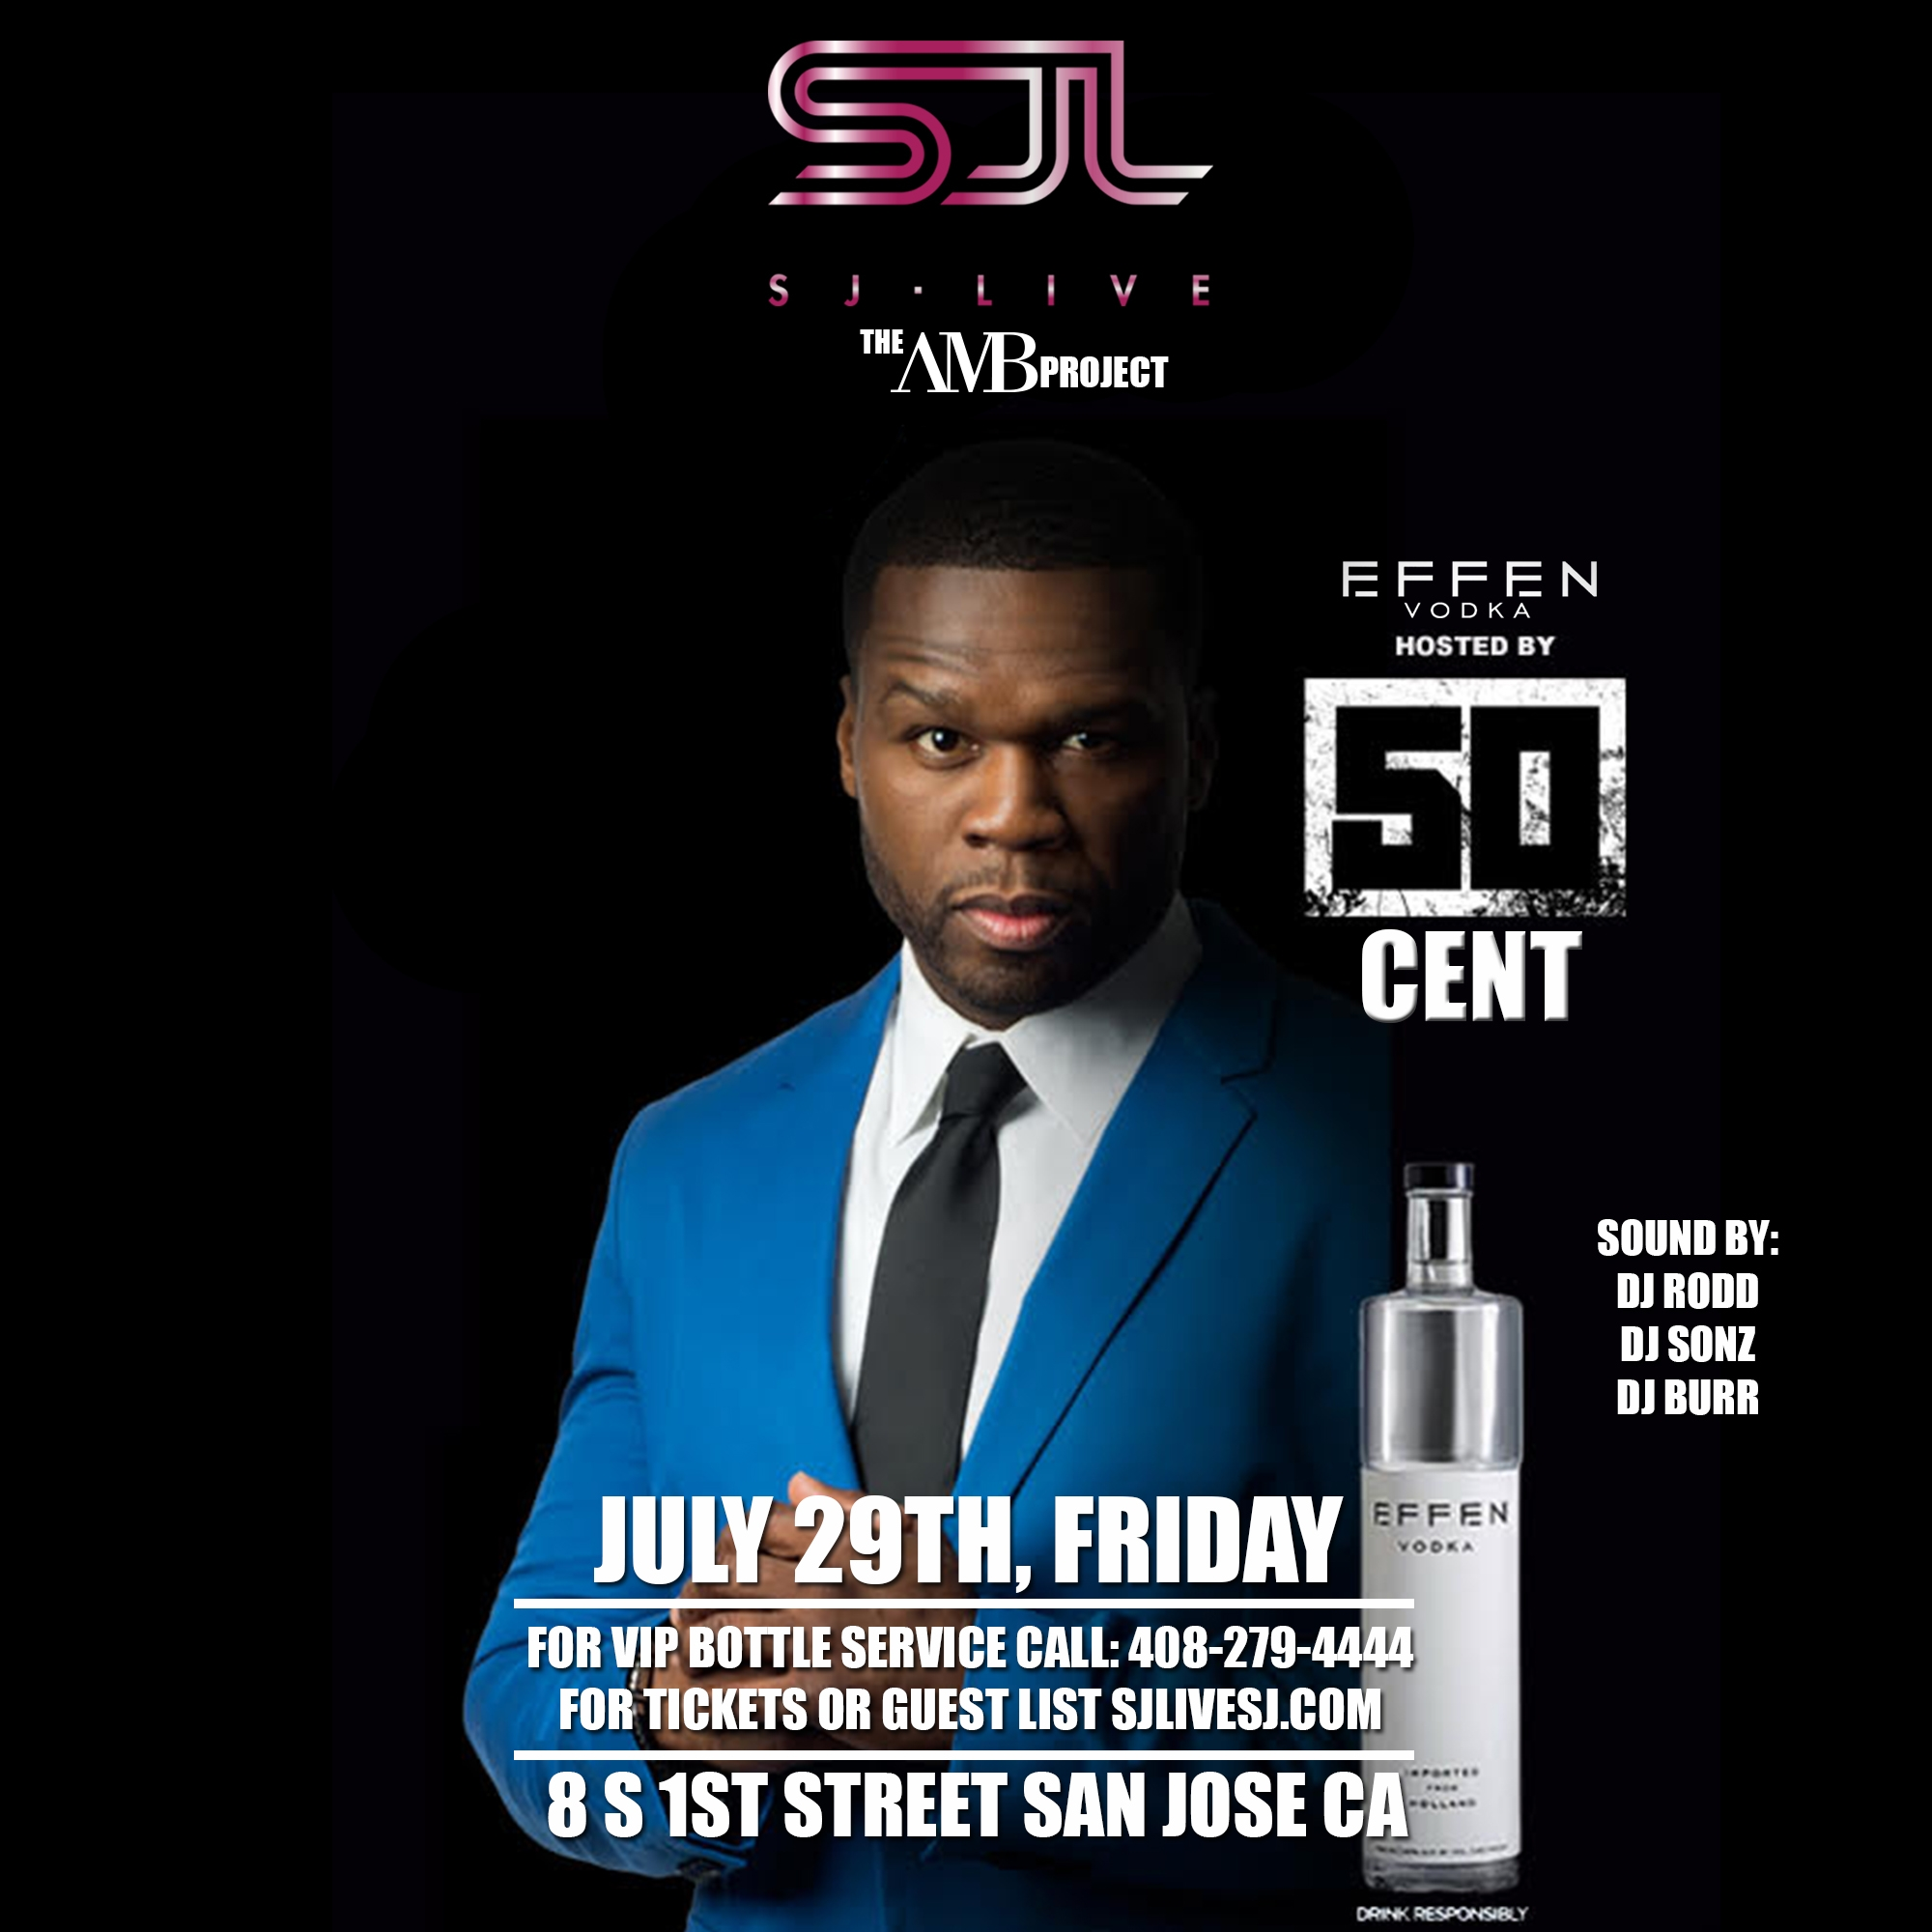 50 cent Live at SJ Live July 29